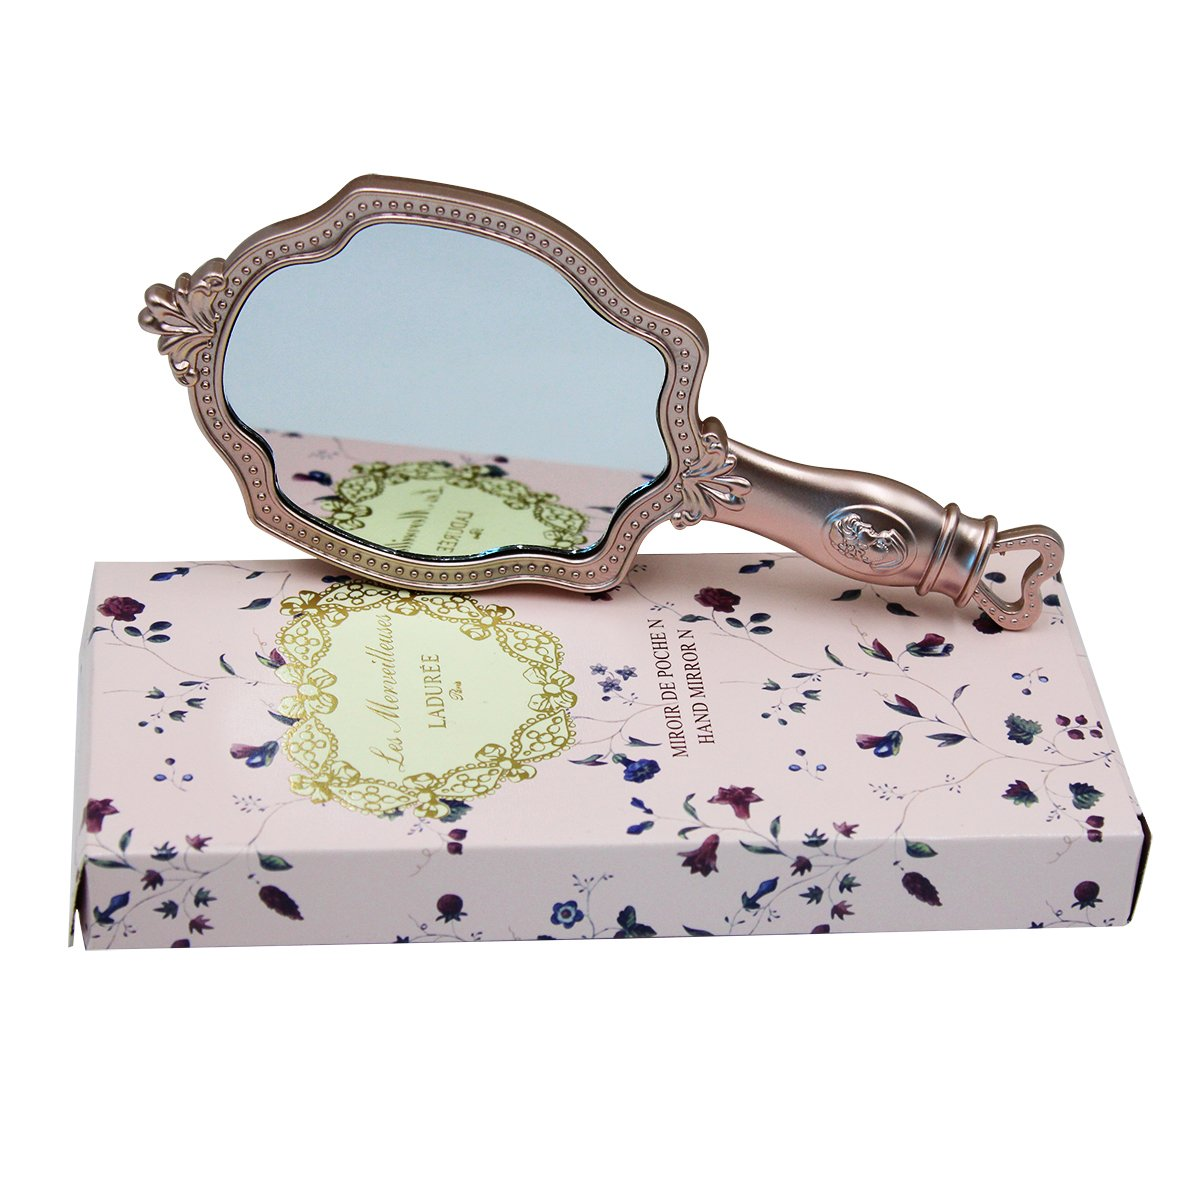 BabyPrice Vintage Hand Mirror with Handle - Princess Portable Small Handheld Floral Embossed Mirror